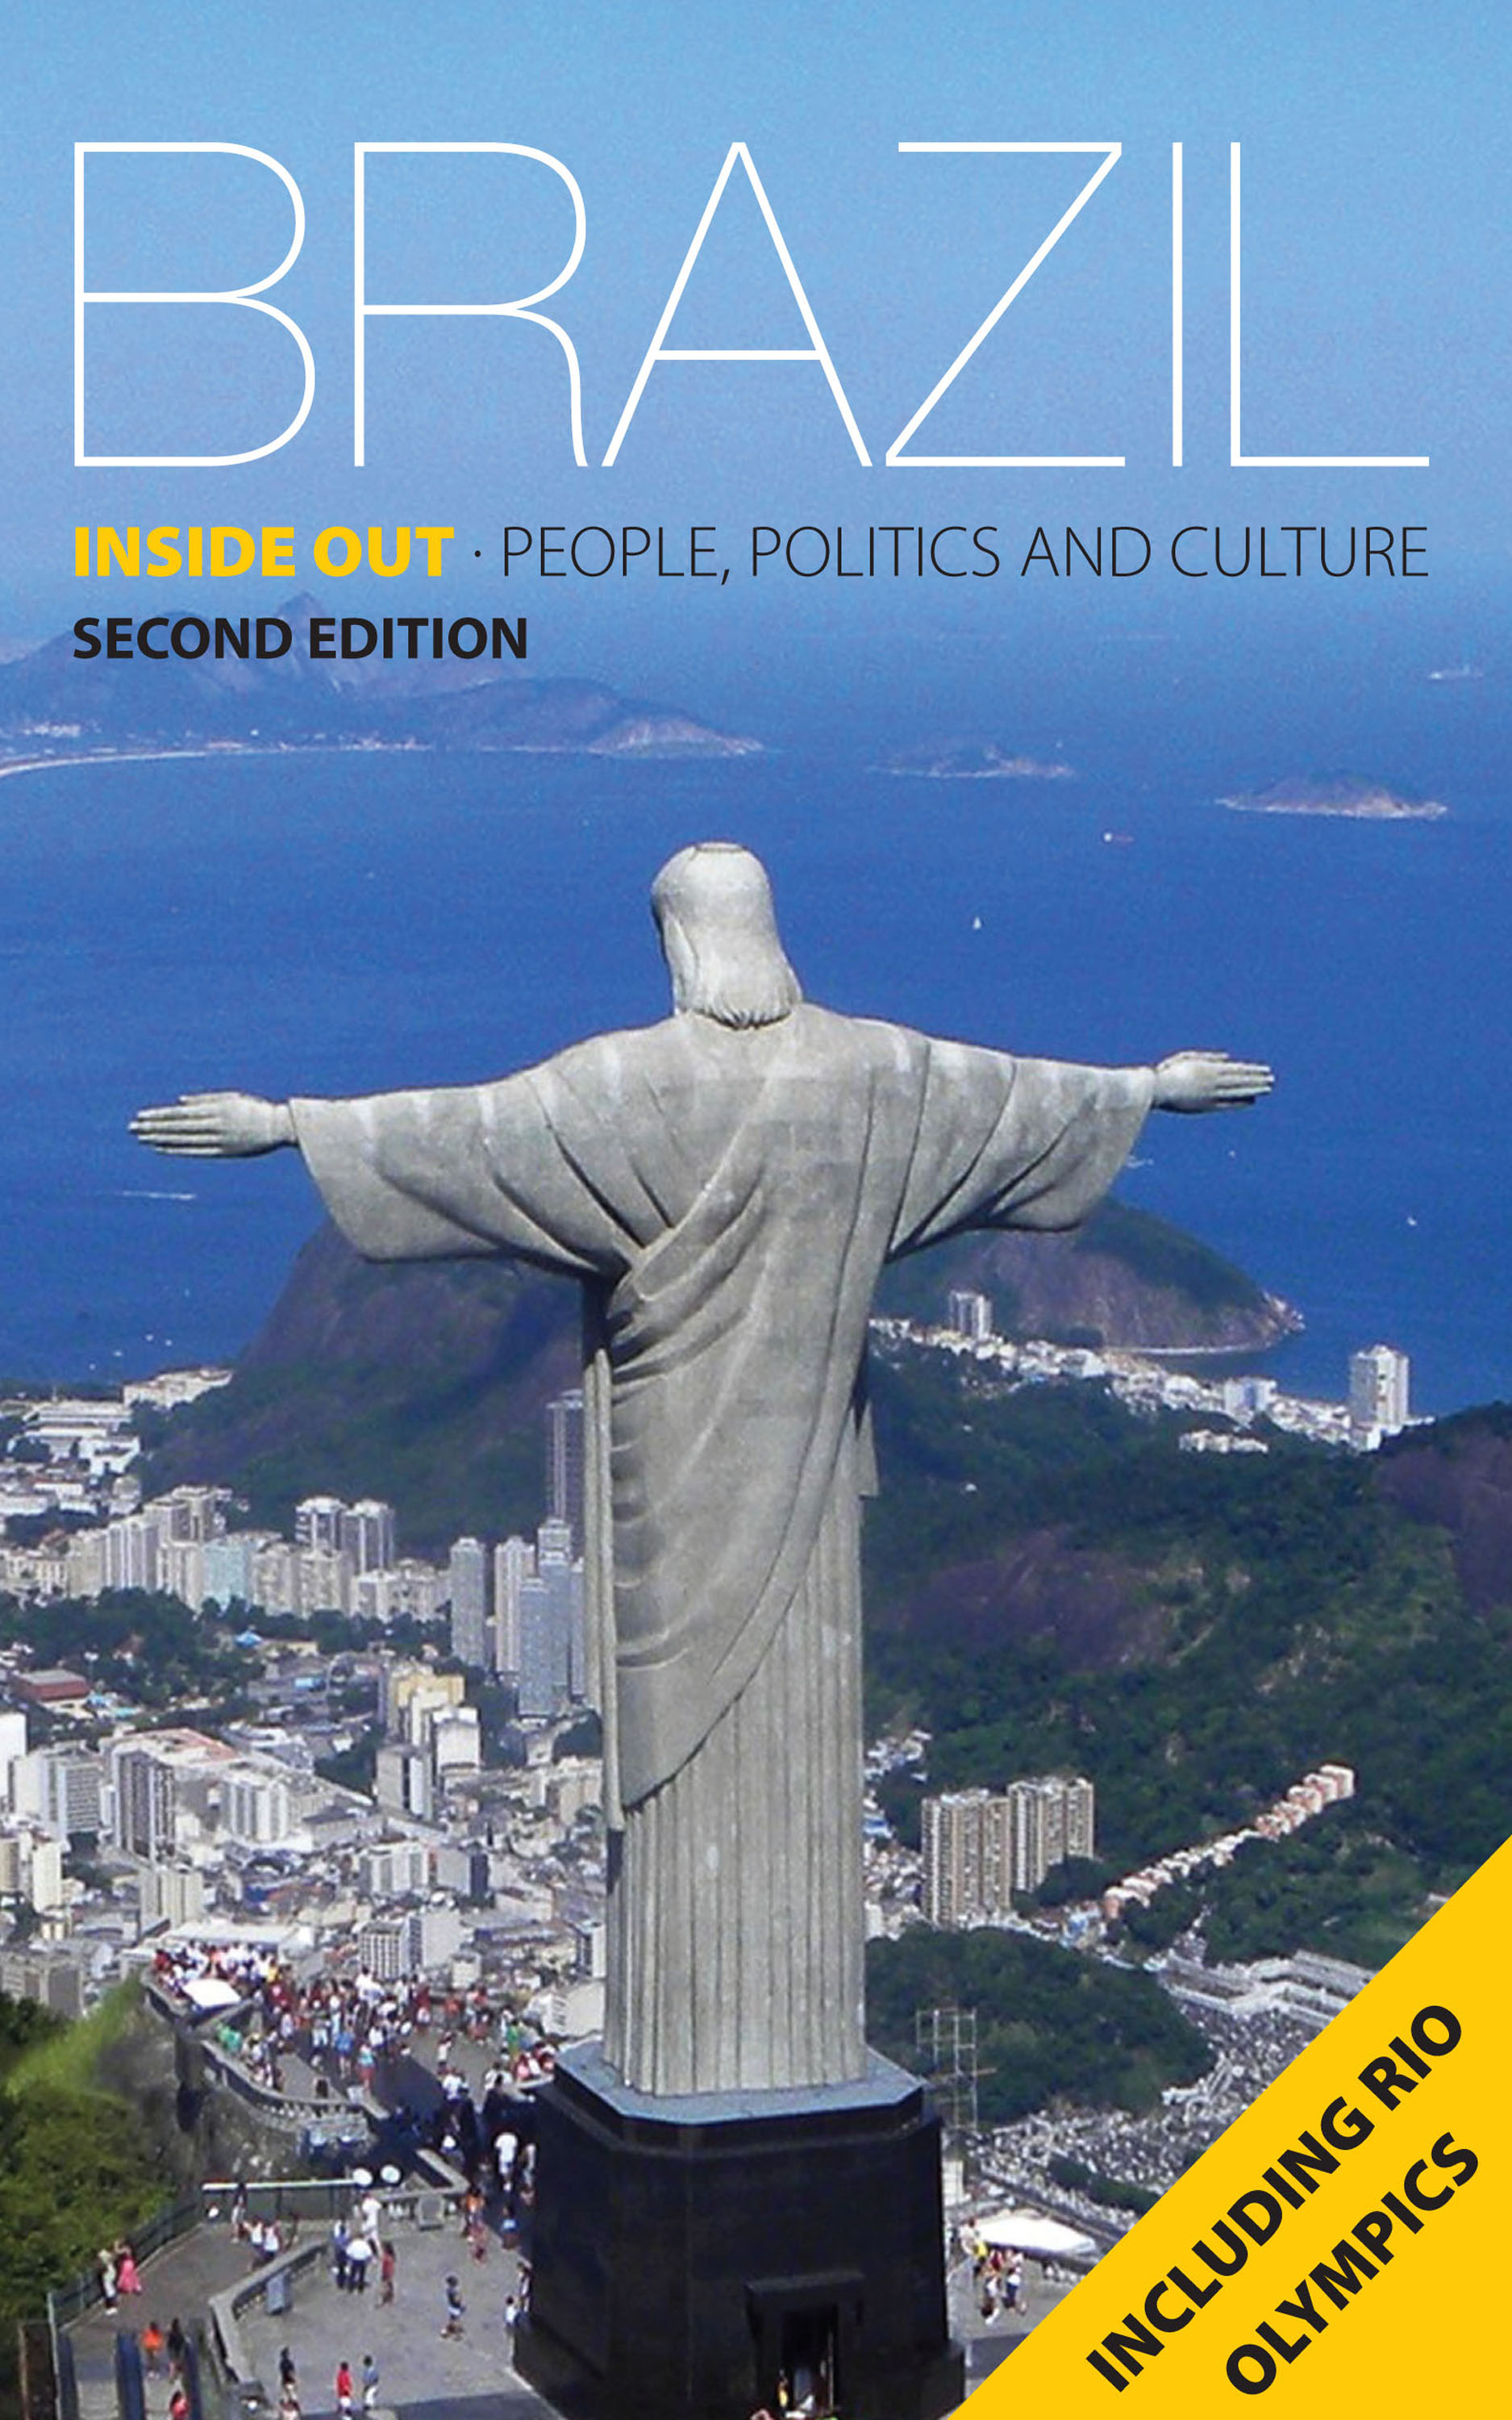 Brazil Inside Out 2nd Edition